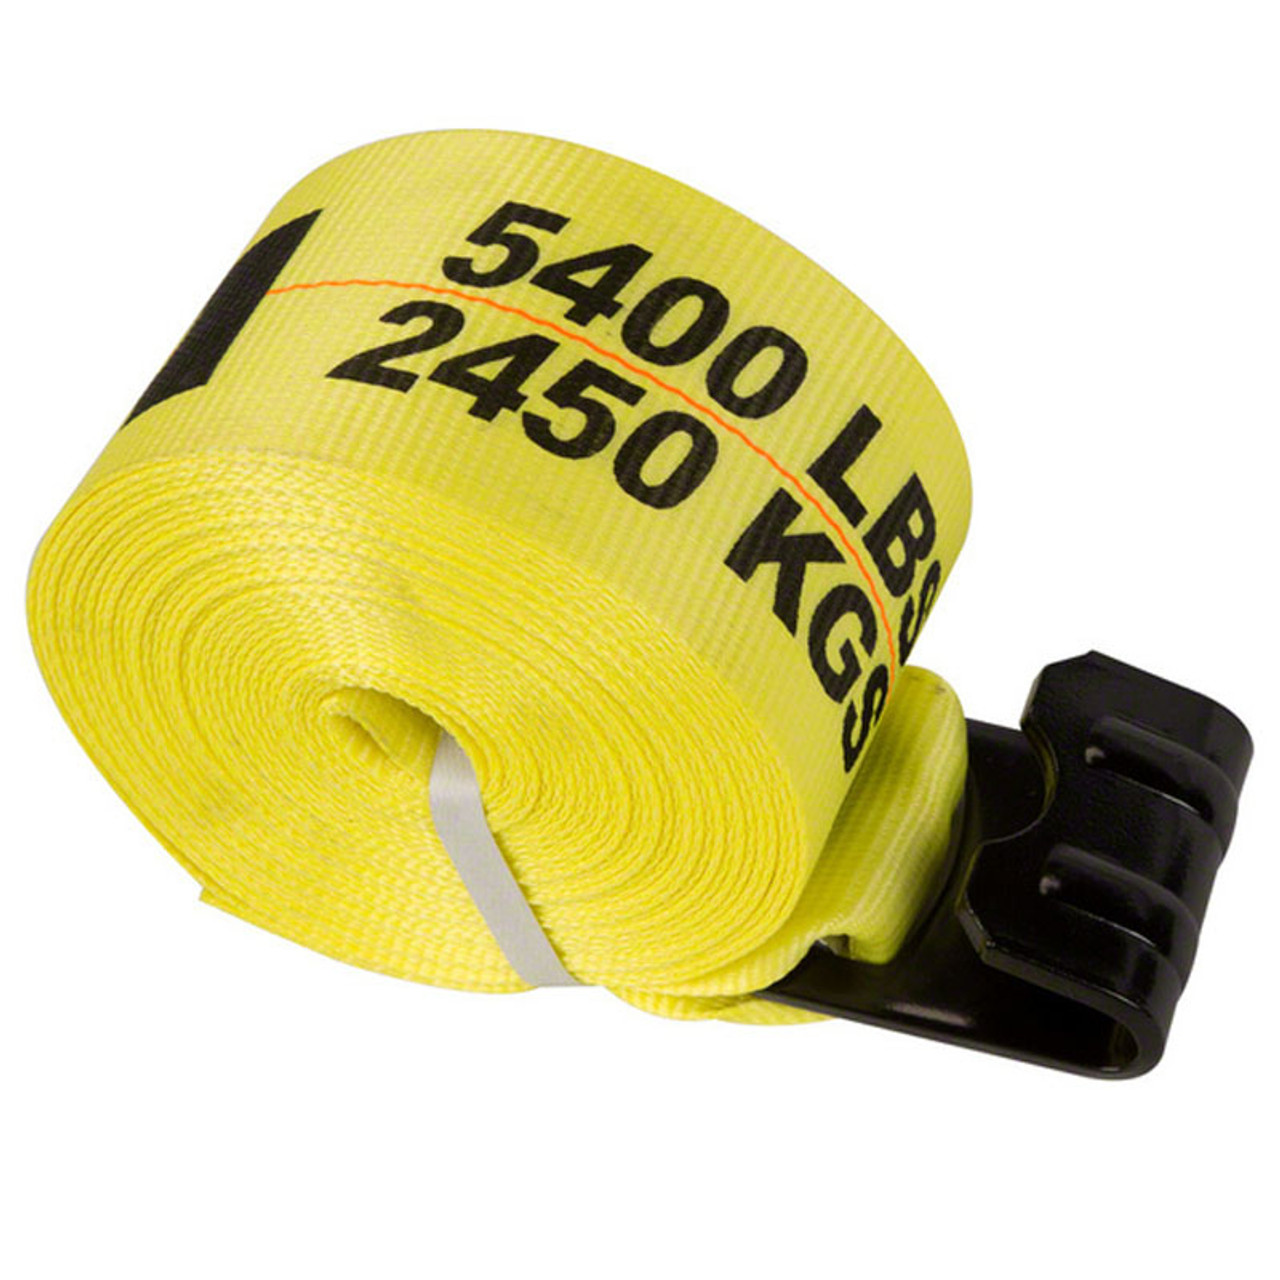 ANCRA / 43795-10 / Winch Strap with Flat Hook / 30-Feet